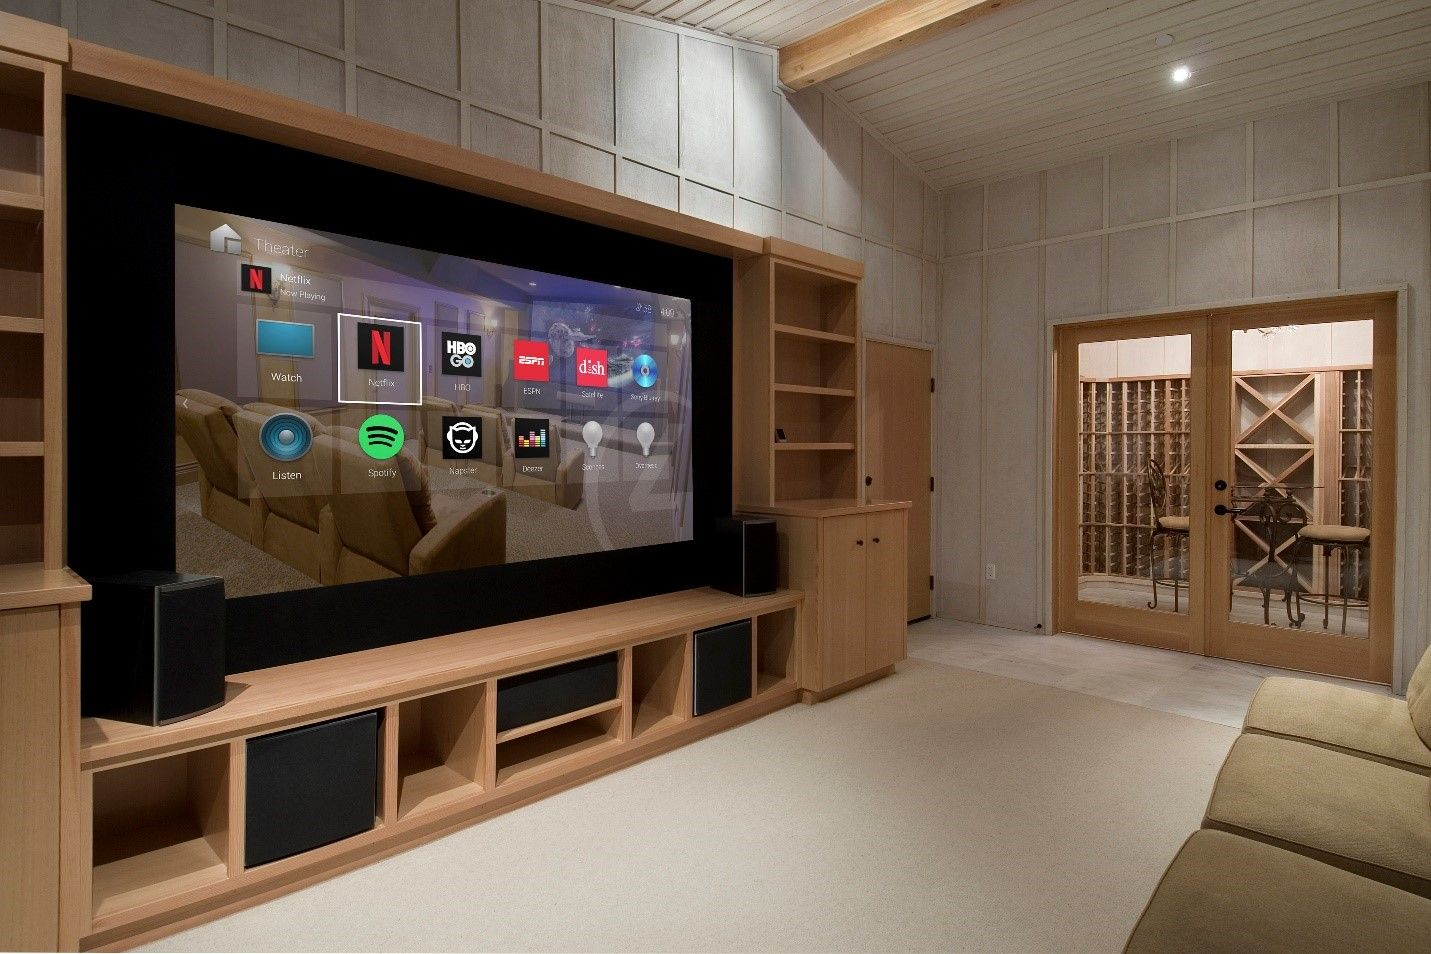 The Surprising Ways Modern Home Theater Design Is Changing